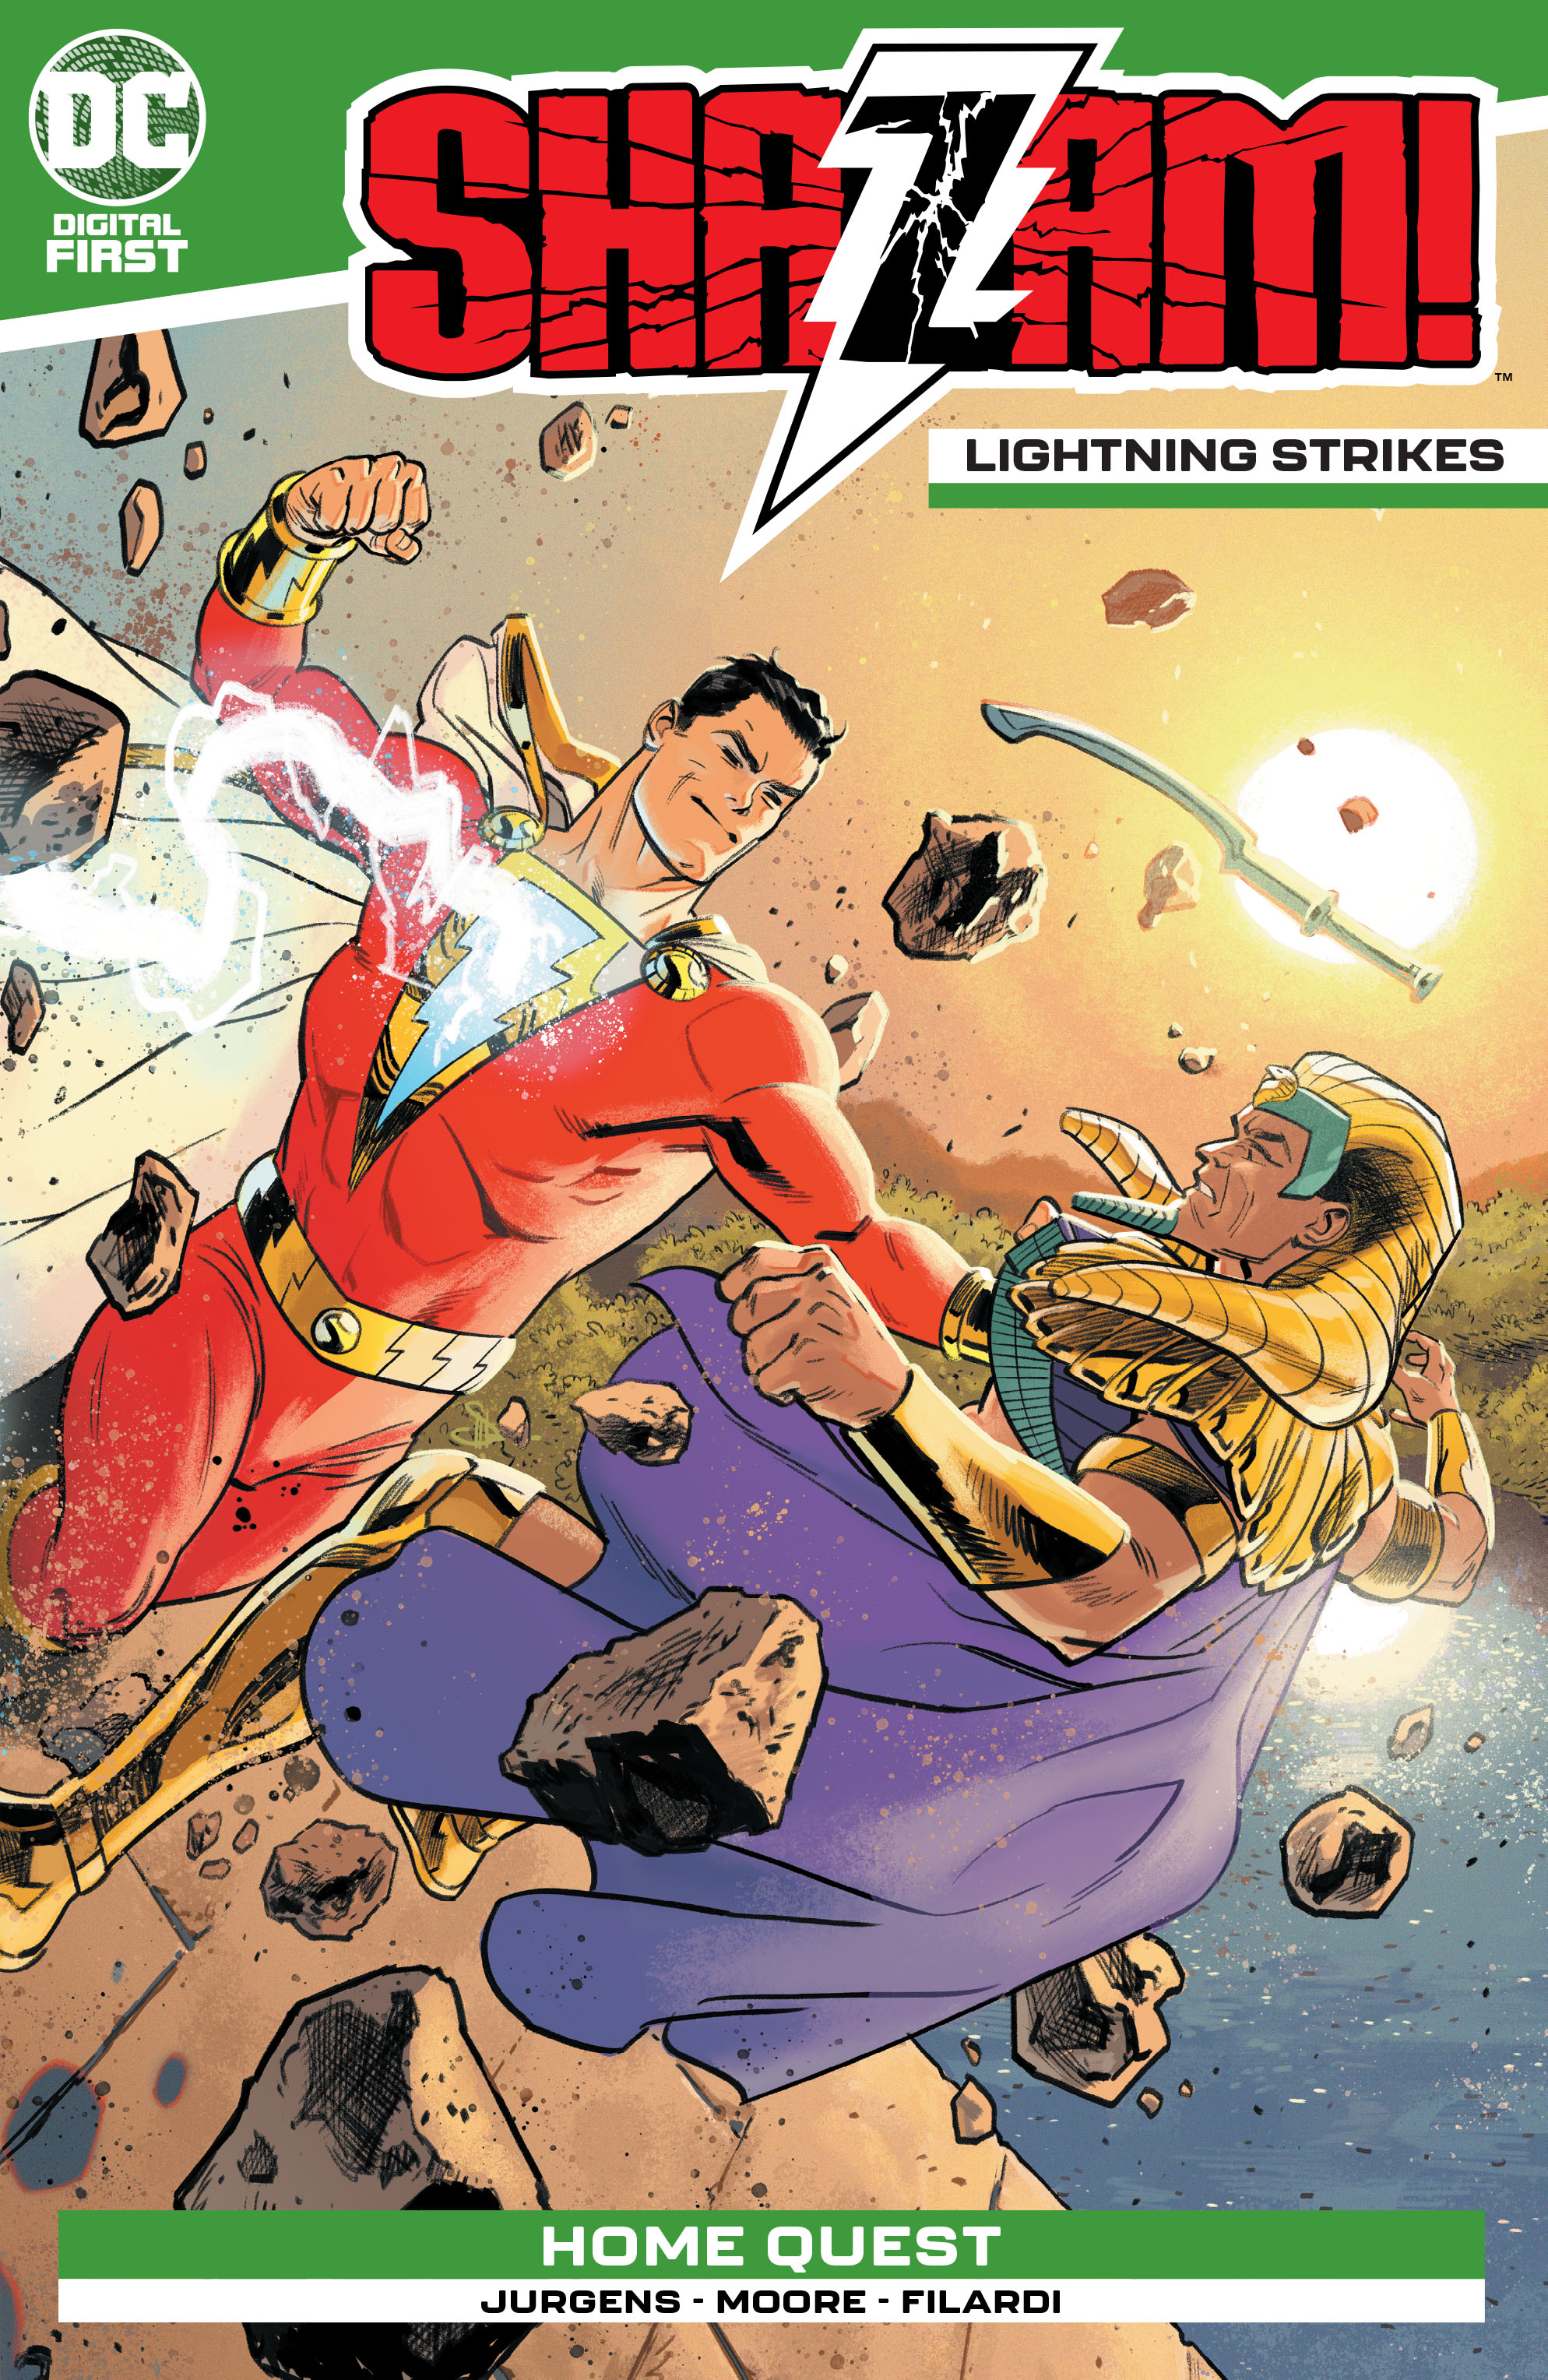 Shazam!: Lightning Strikes Vol 1 1 (Digital)